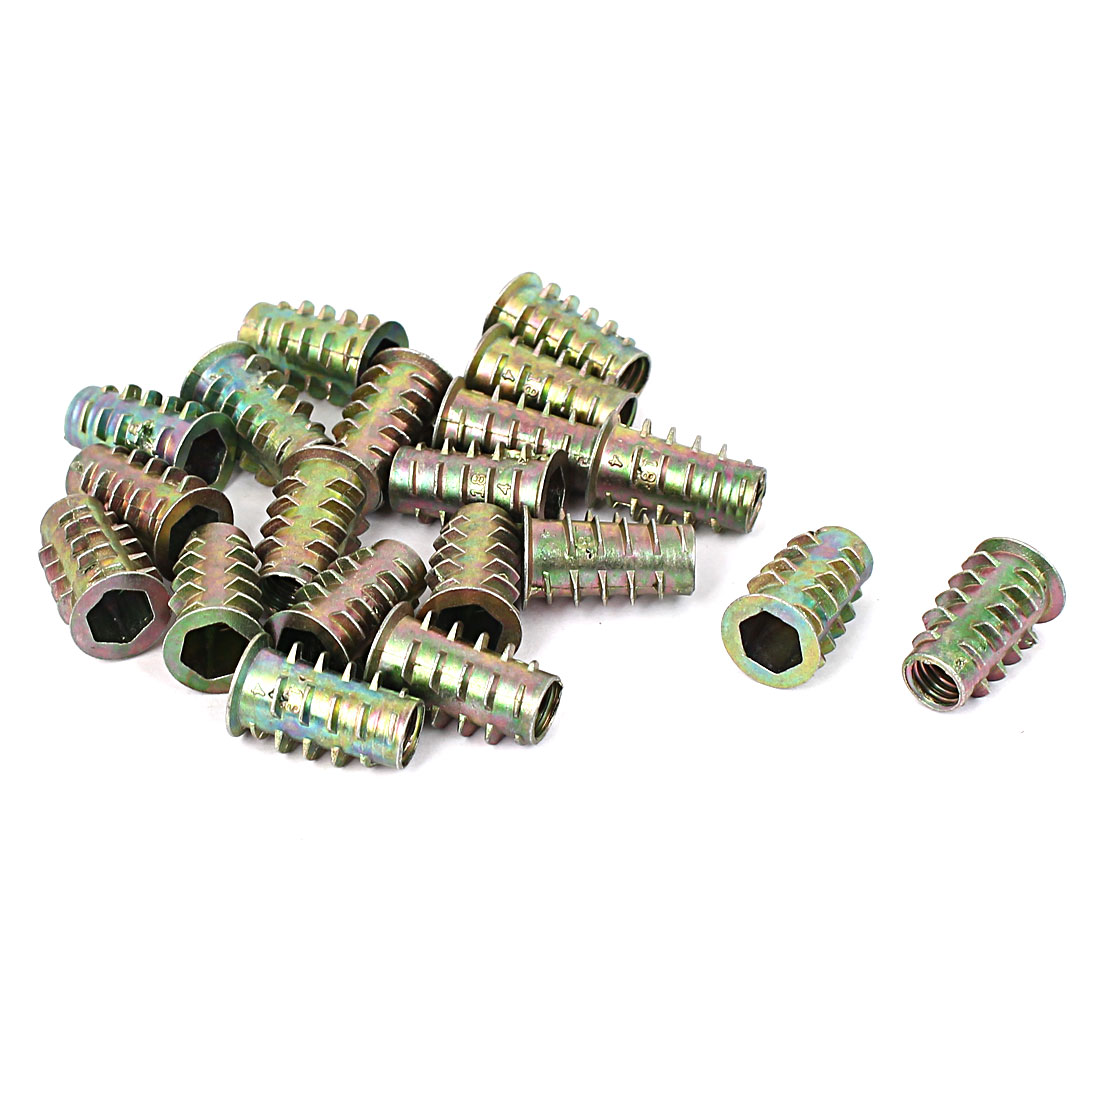 Furniture Hex Drive Head Threaded Insert Nut M6x17mm 20pcs for Wood